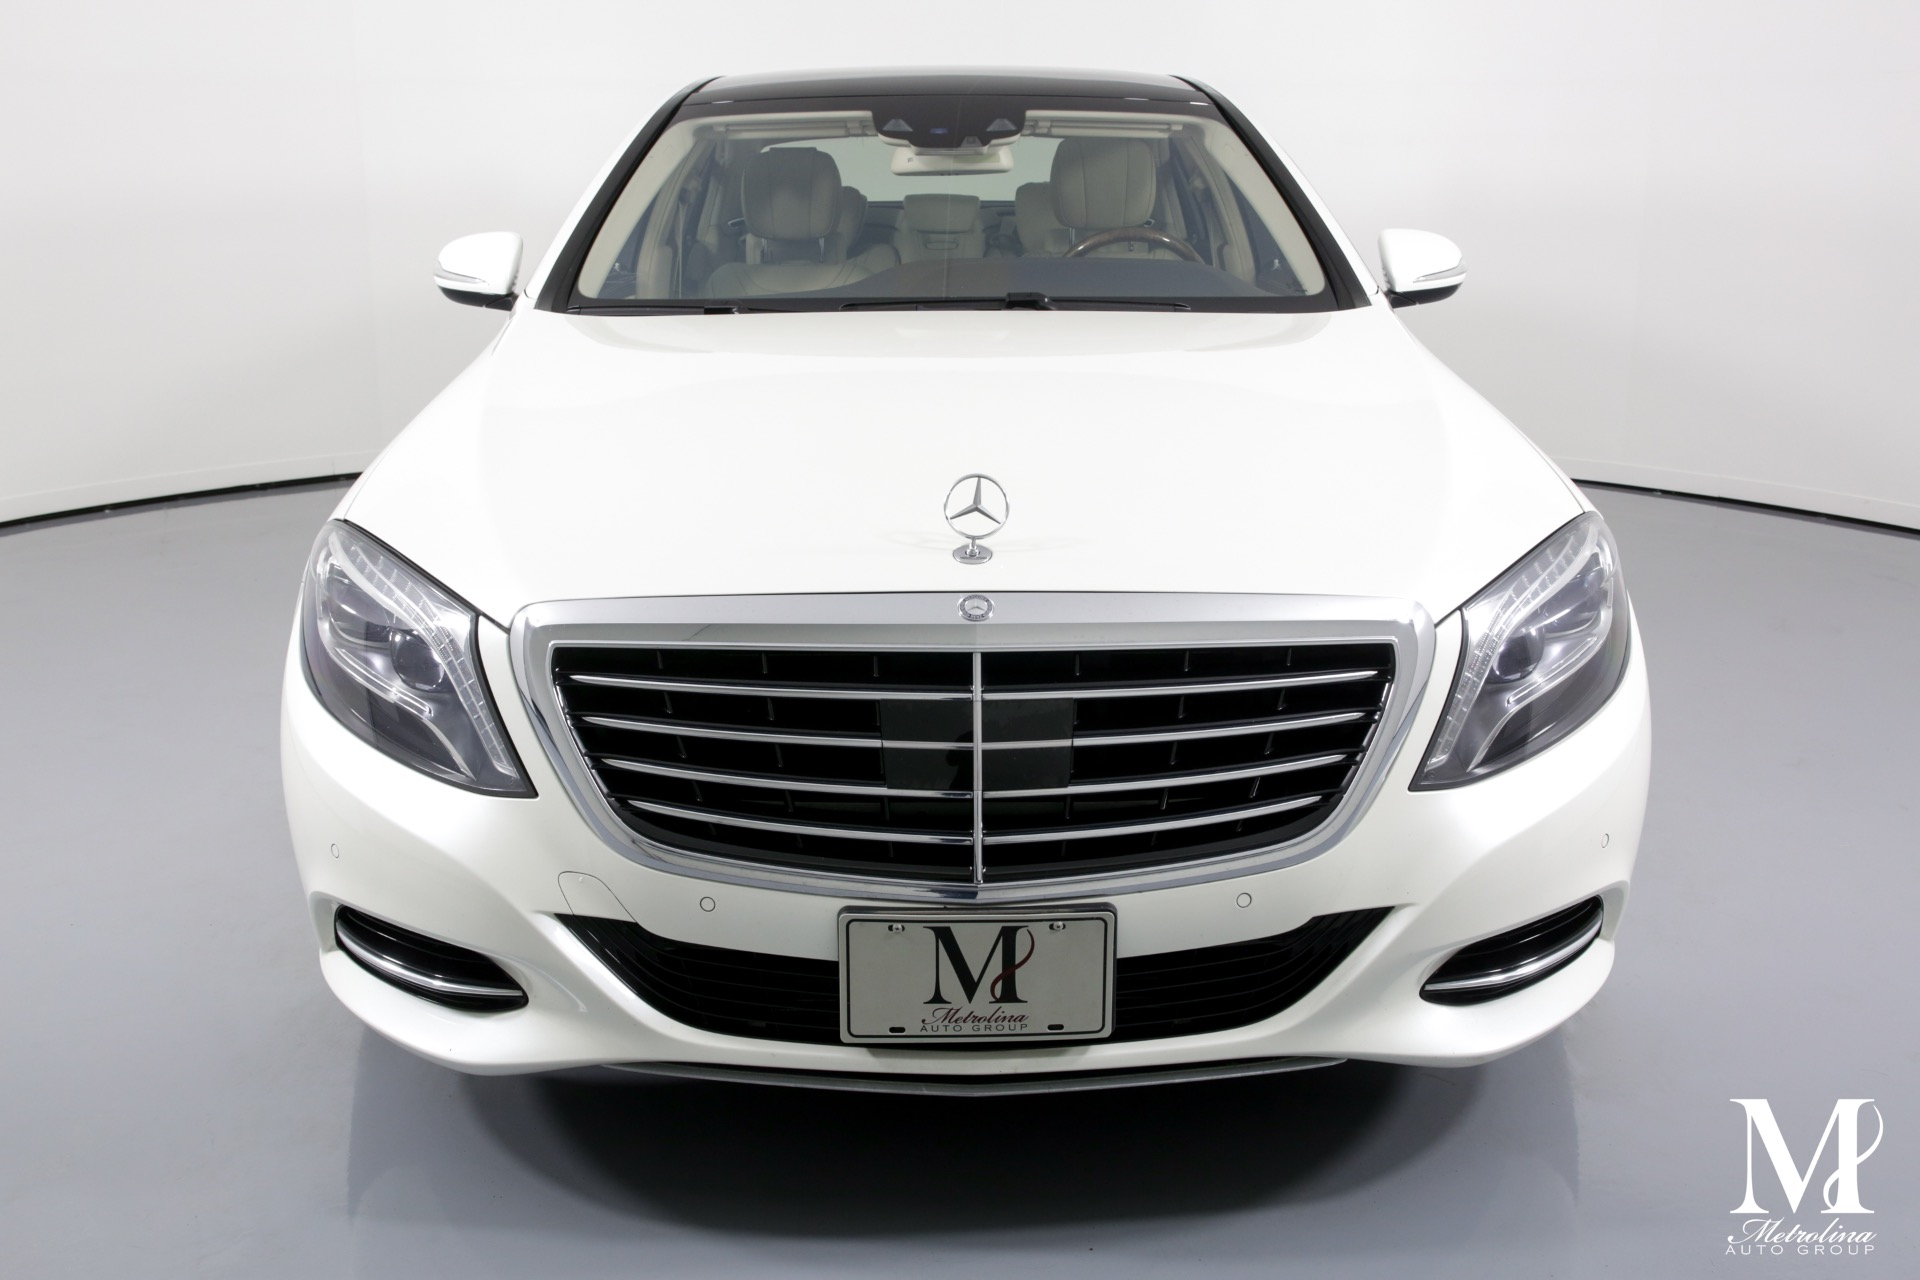 Used 2014 Mercedes-Benz S-Class S 550 4MATIC for sale $36,456 at Metrolina Auto Group in Charlotte NC 28217 - 3